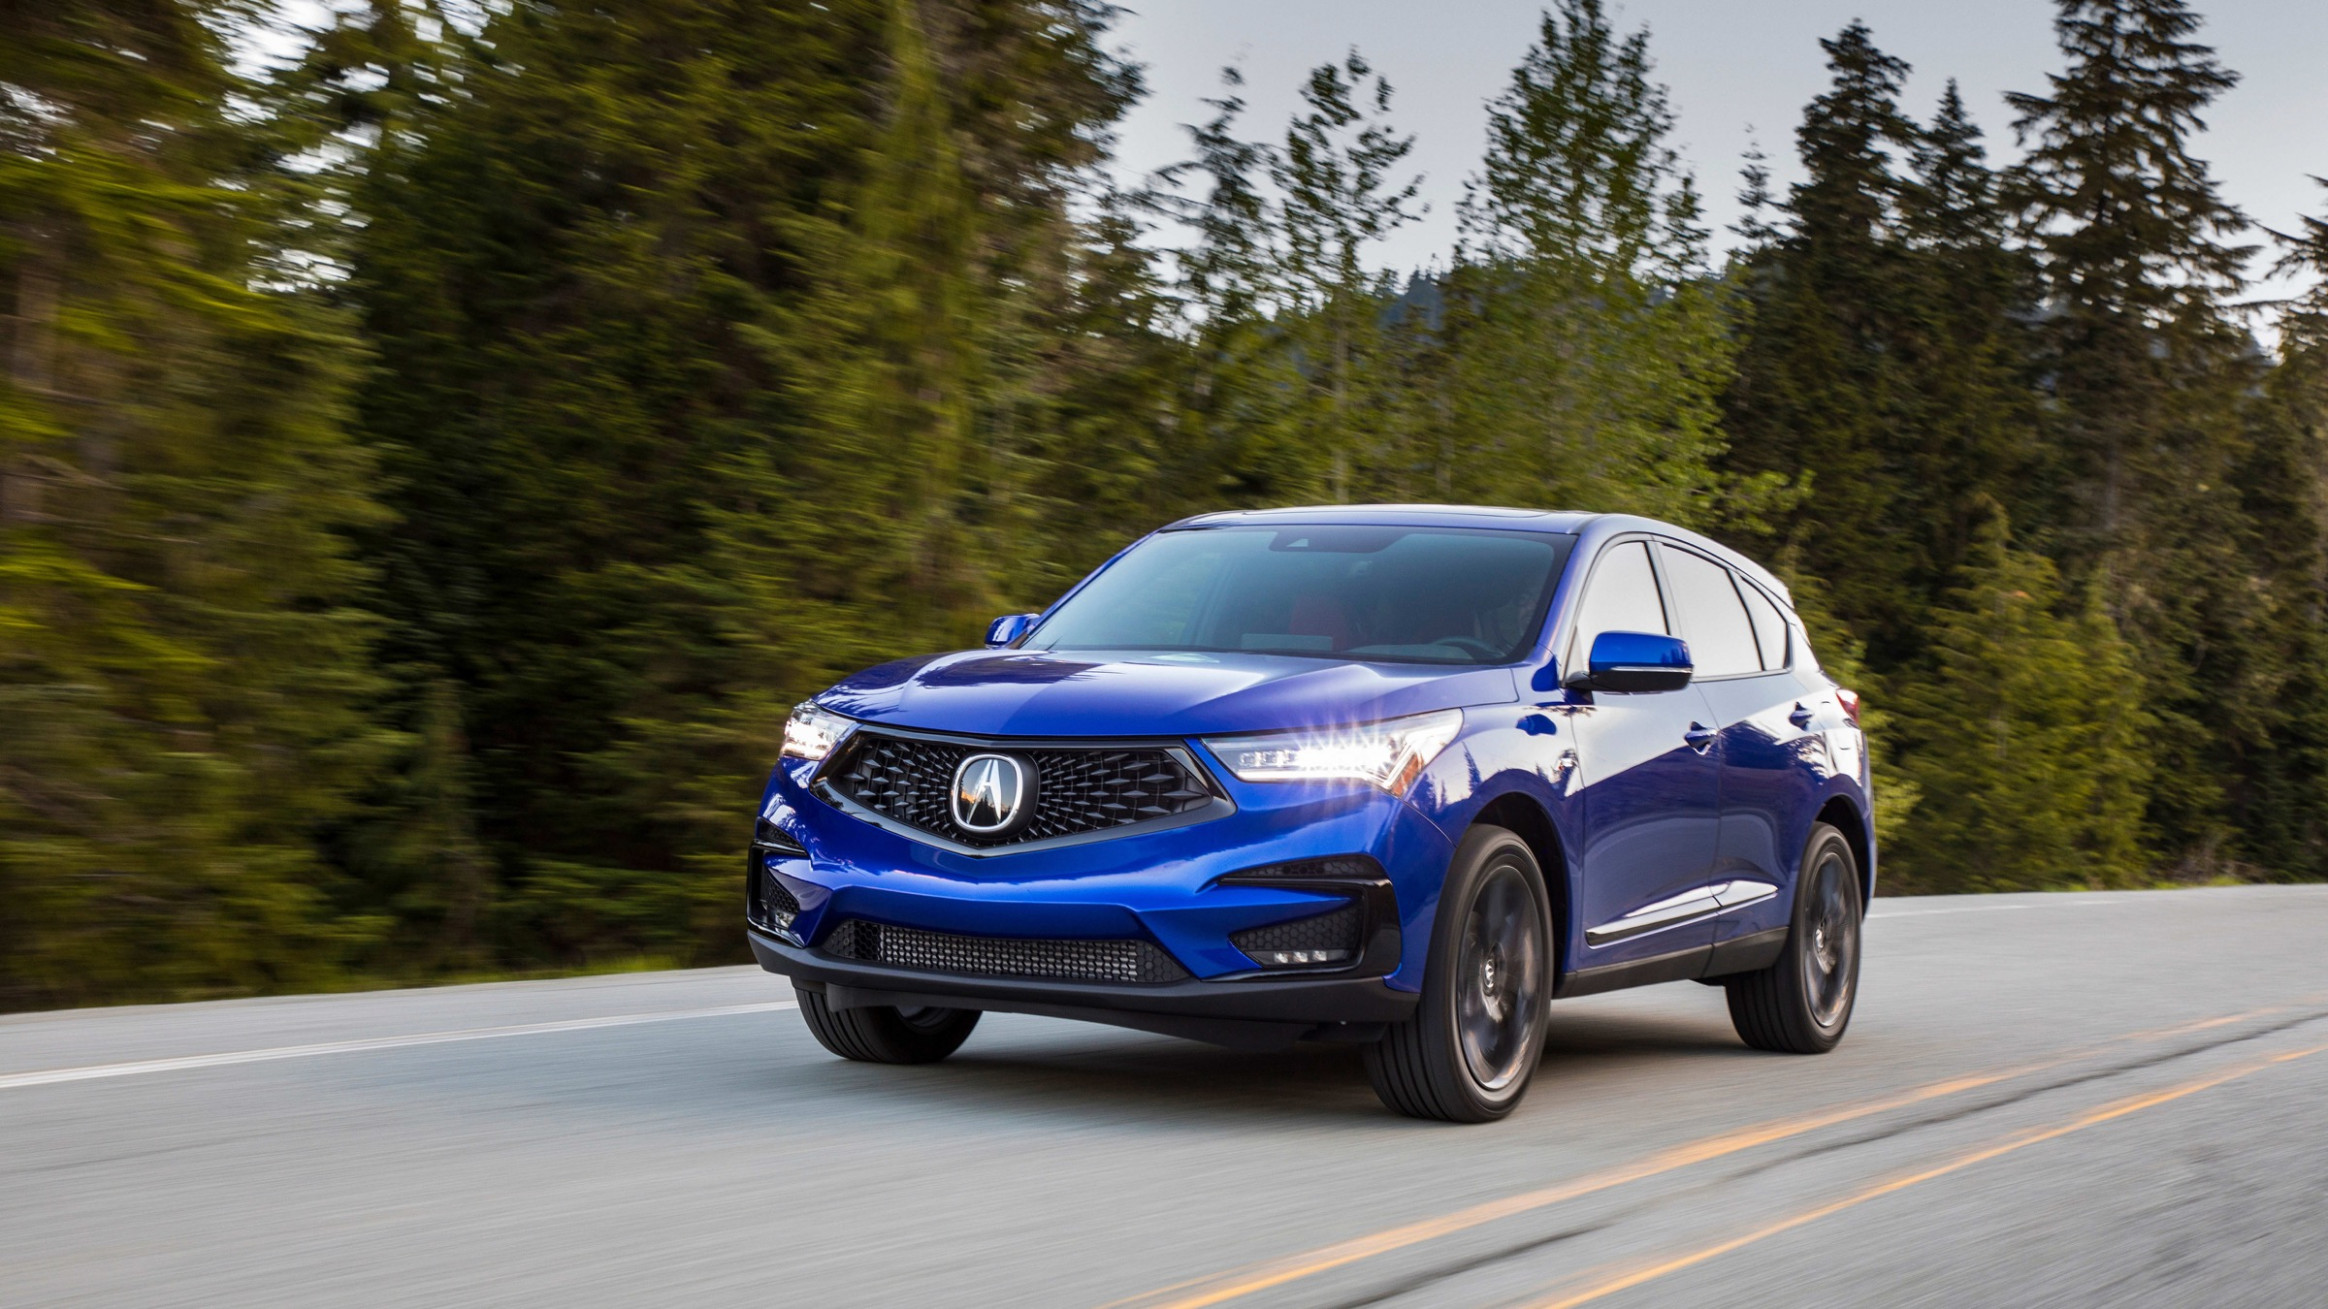 11 Acura RDX Review and Buying Guide | Specs, features, photos ..